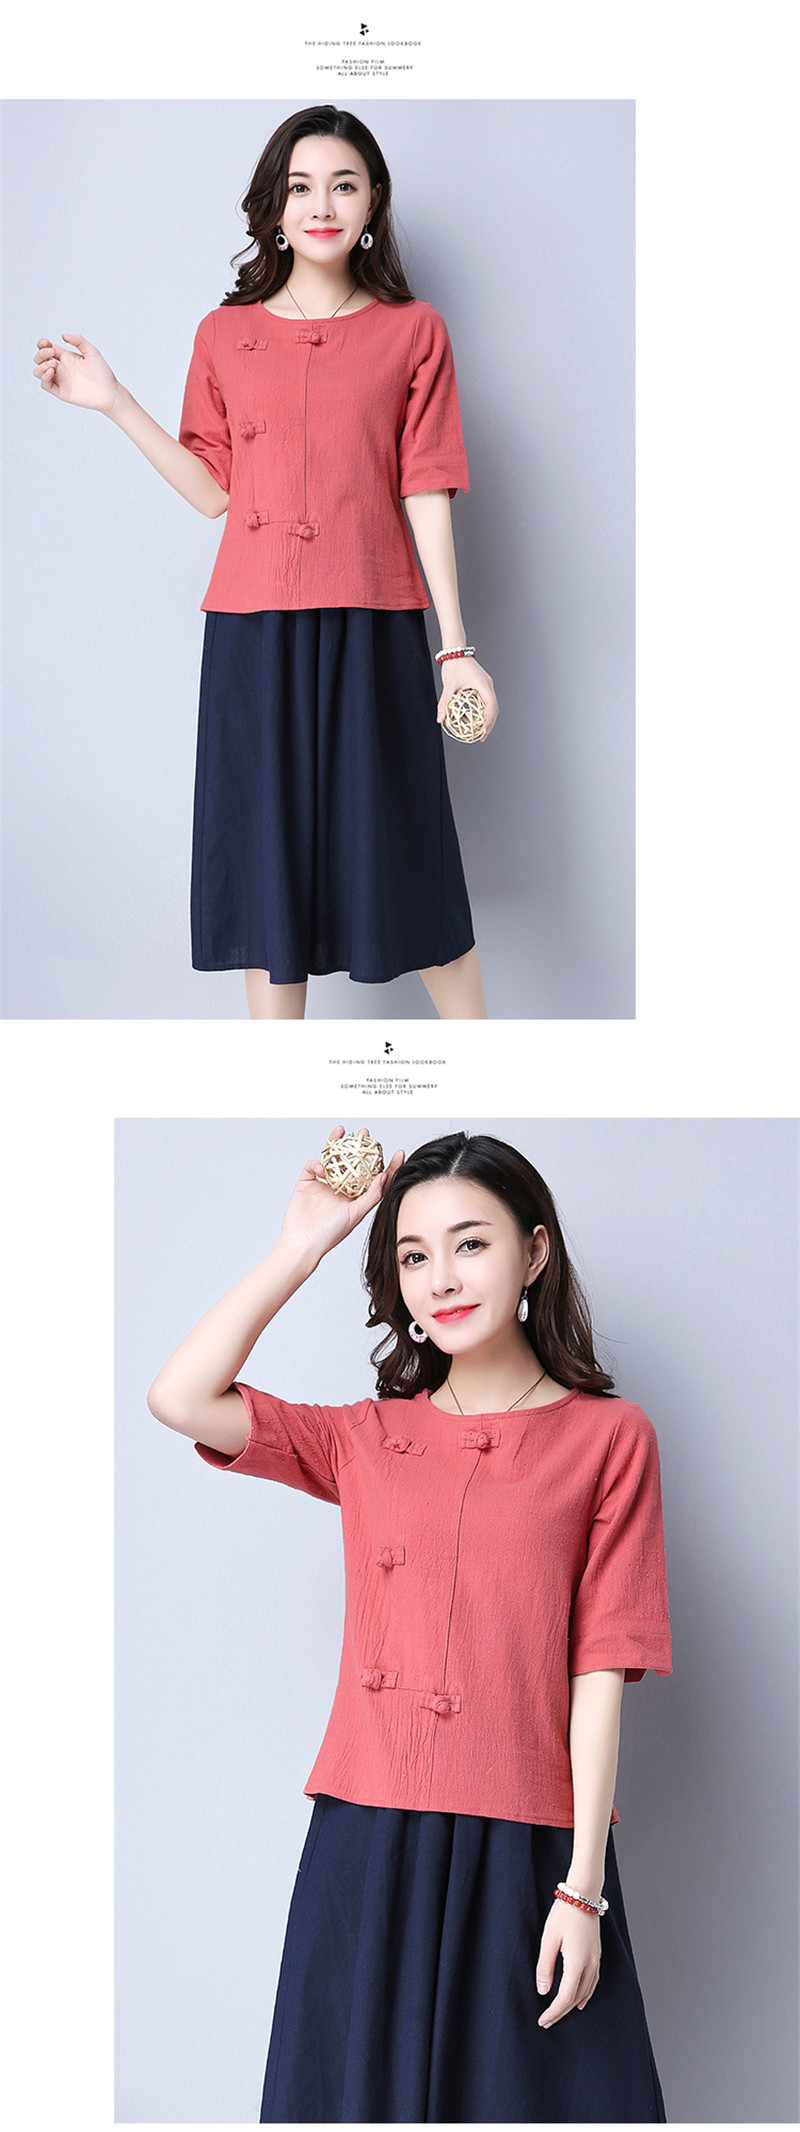 Cotton 2018 Summer Half Sleeve Loose Lady Vintage Women Shirt O Neck Chinese Style Linen T-Shirt Button 3XL 8